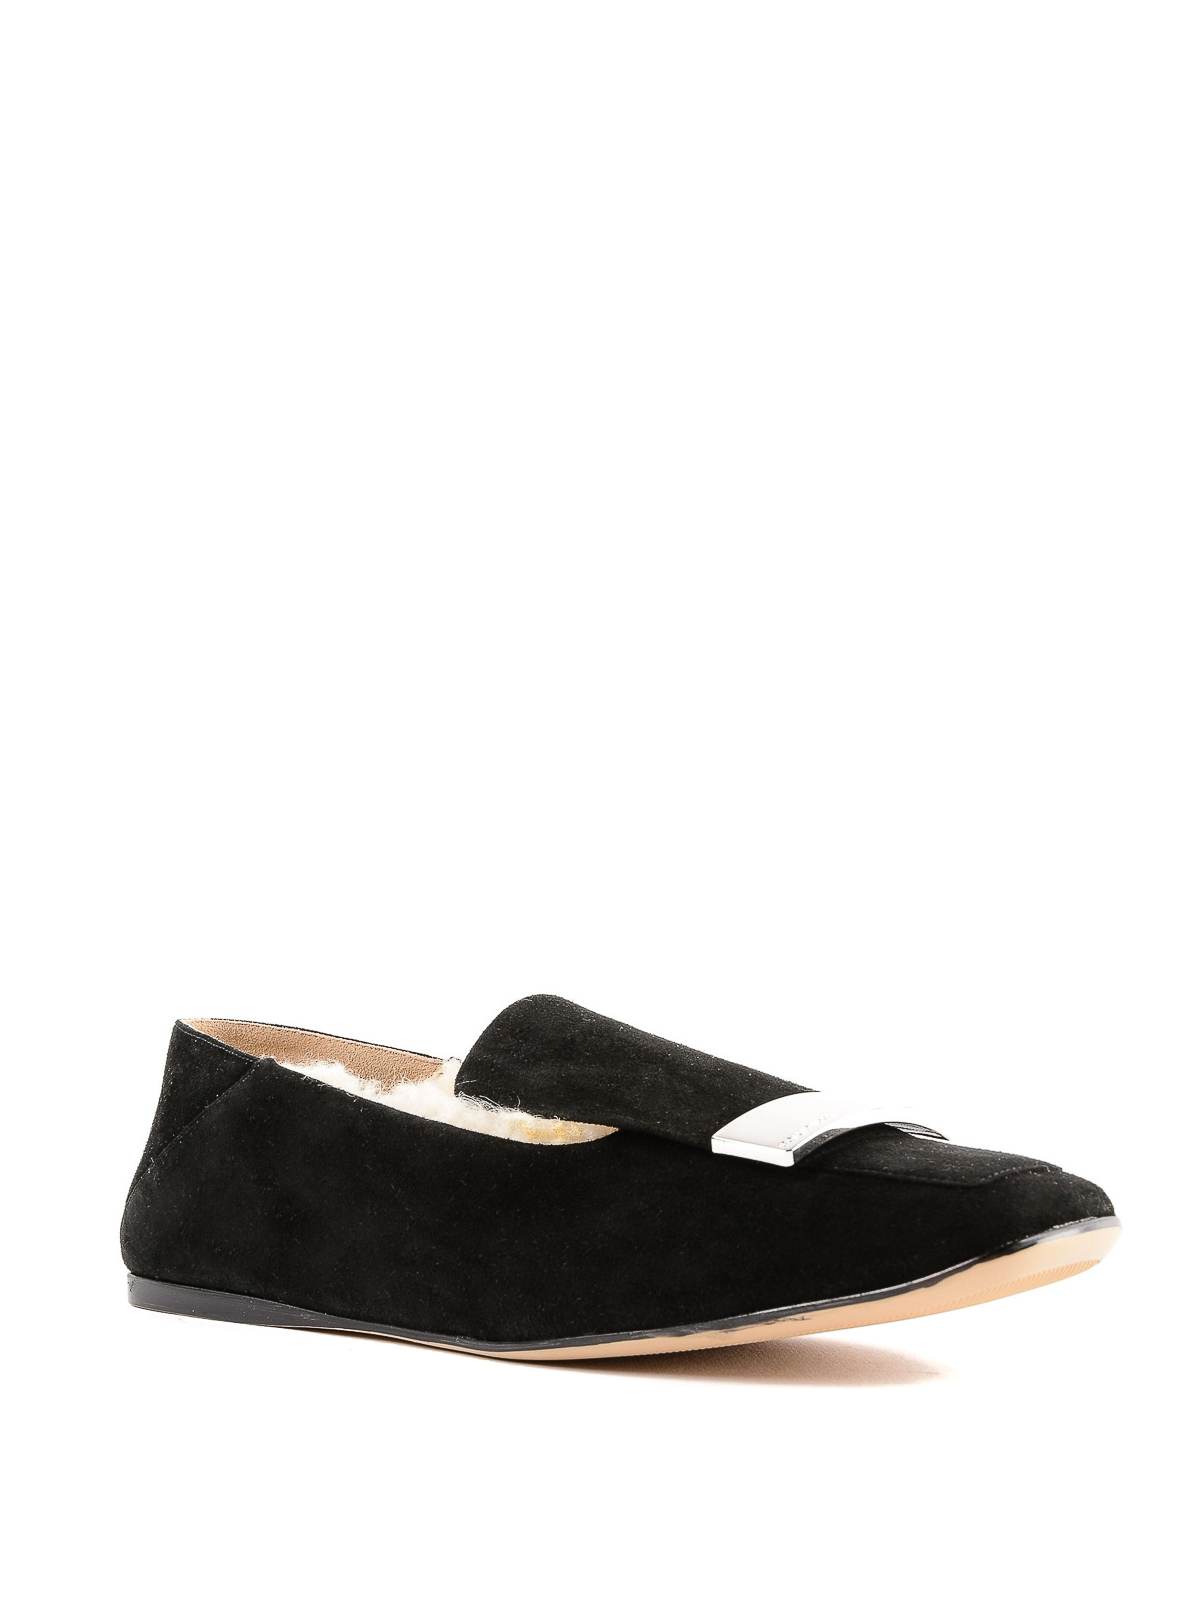 b4c3f58446b180 sergio-rossi-online -loafers--slippers-sr1-suede-slippers-00000134183f00s002.jpg